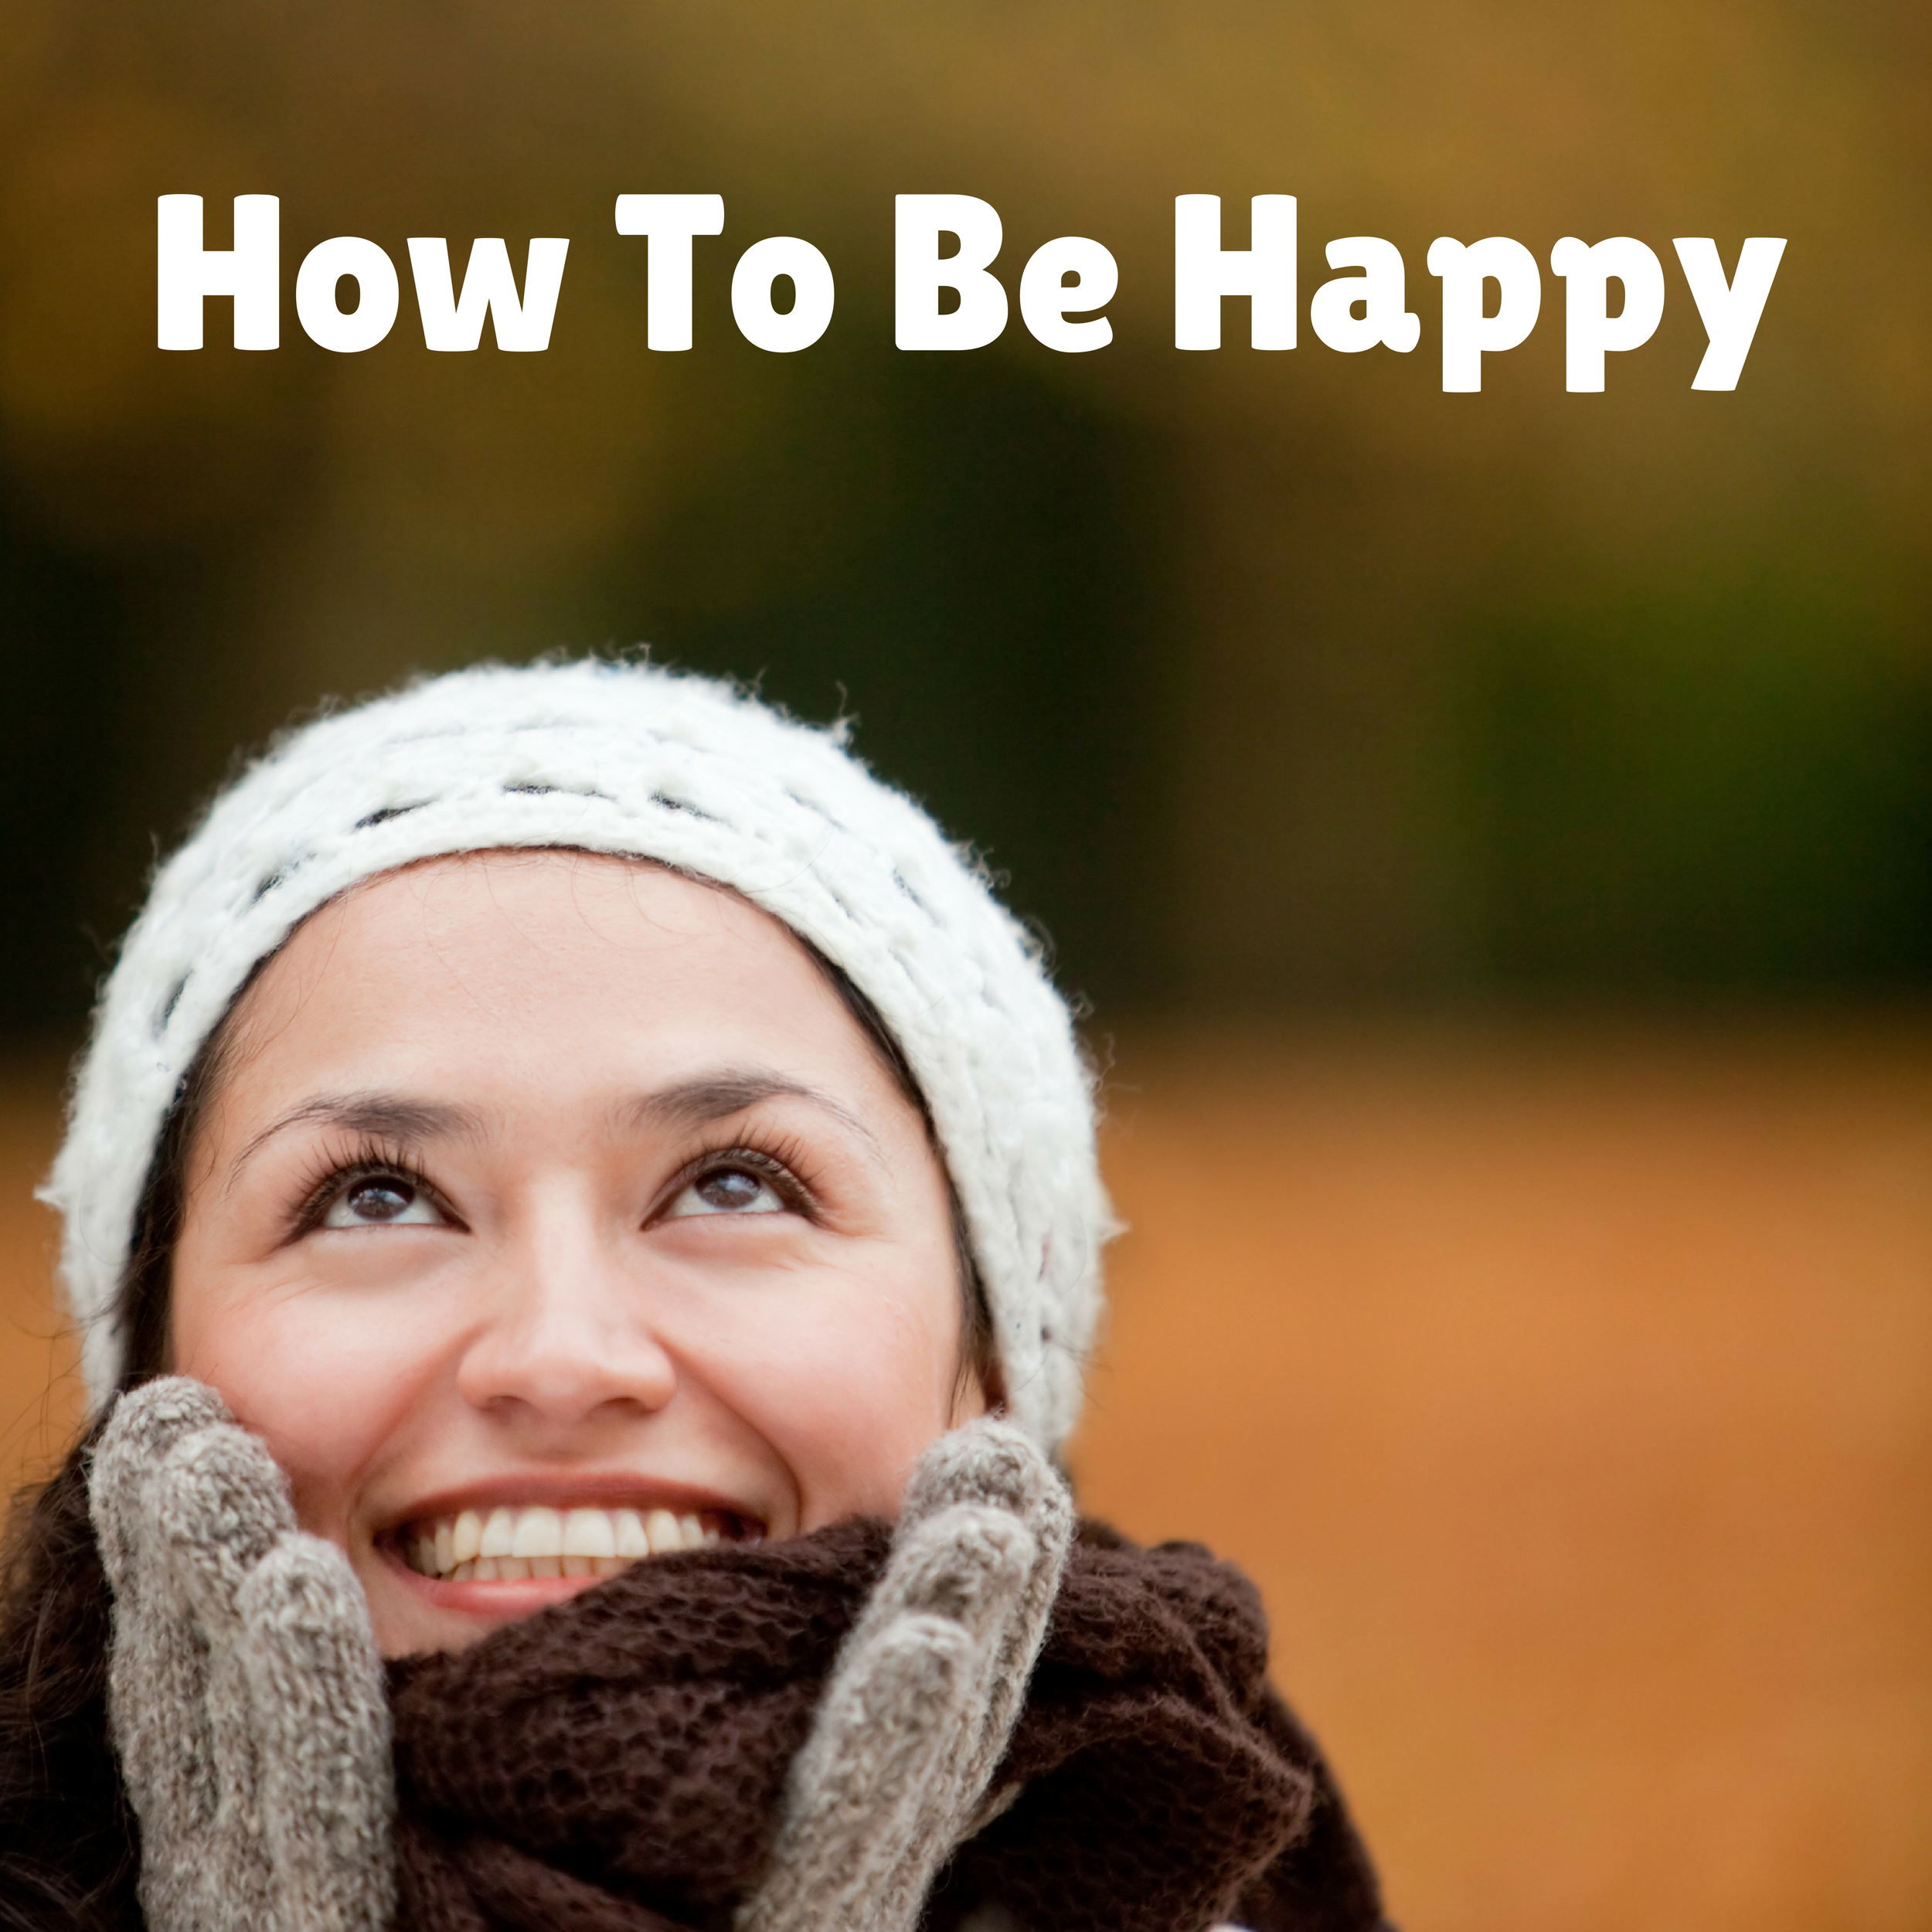 How To Be Happy.png